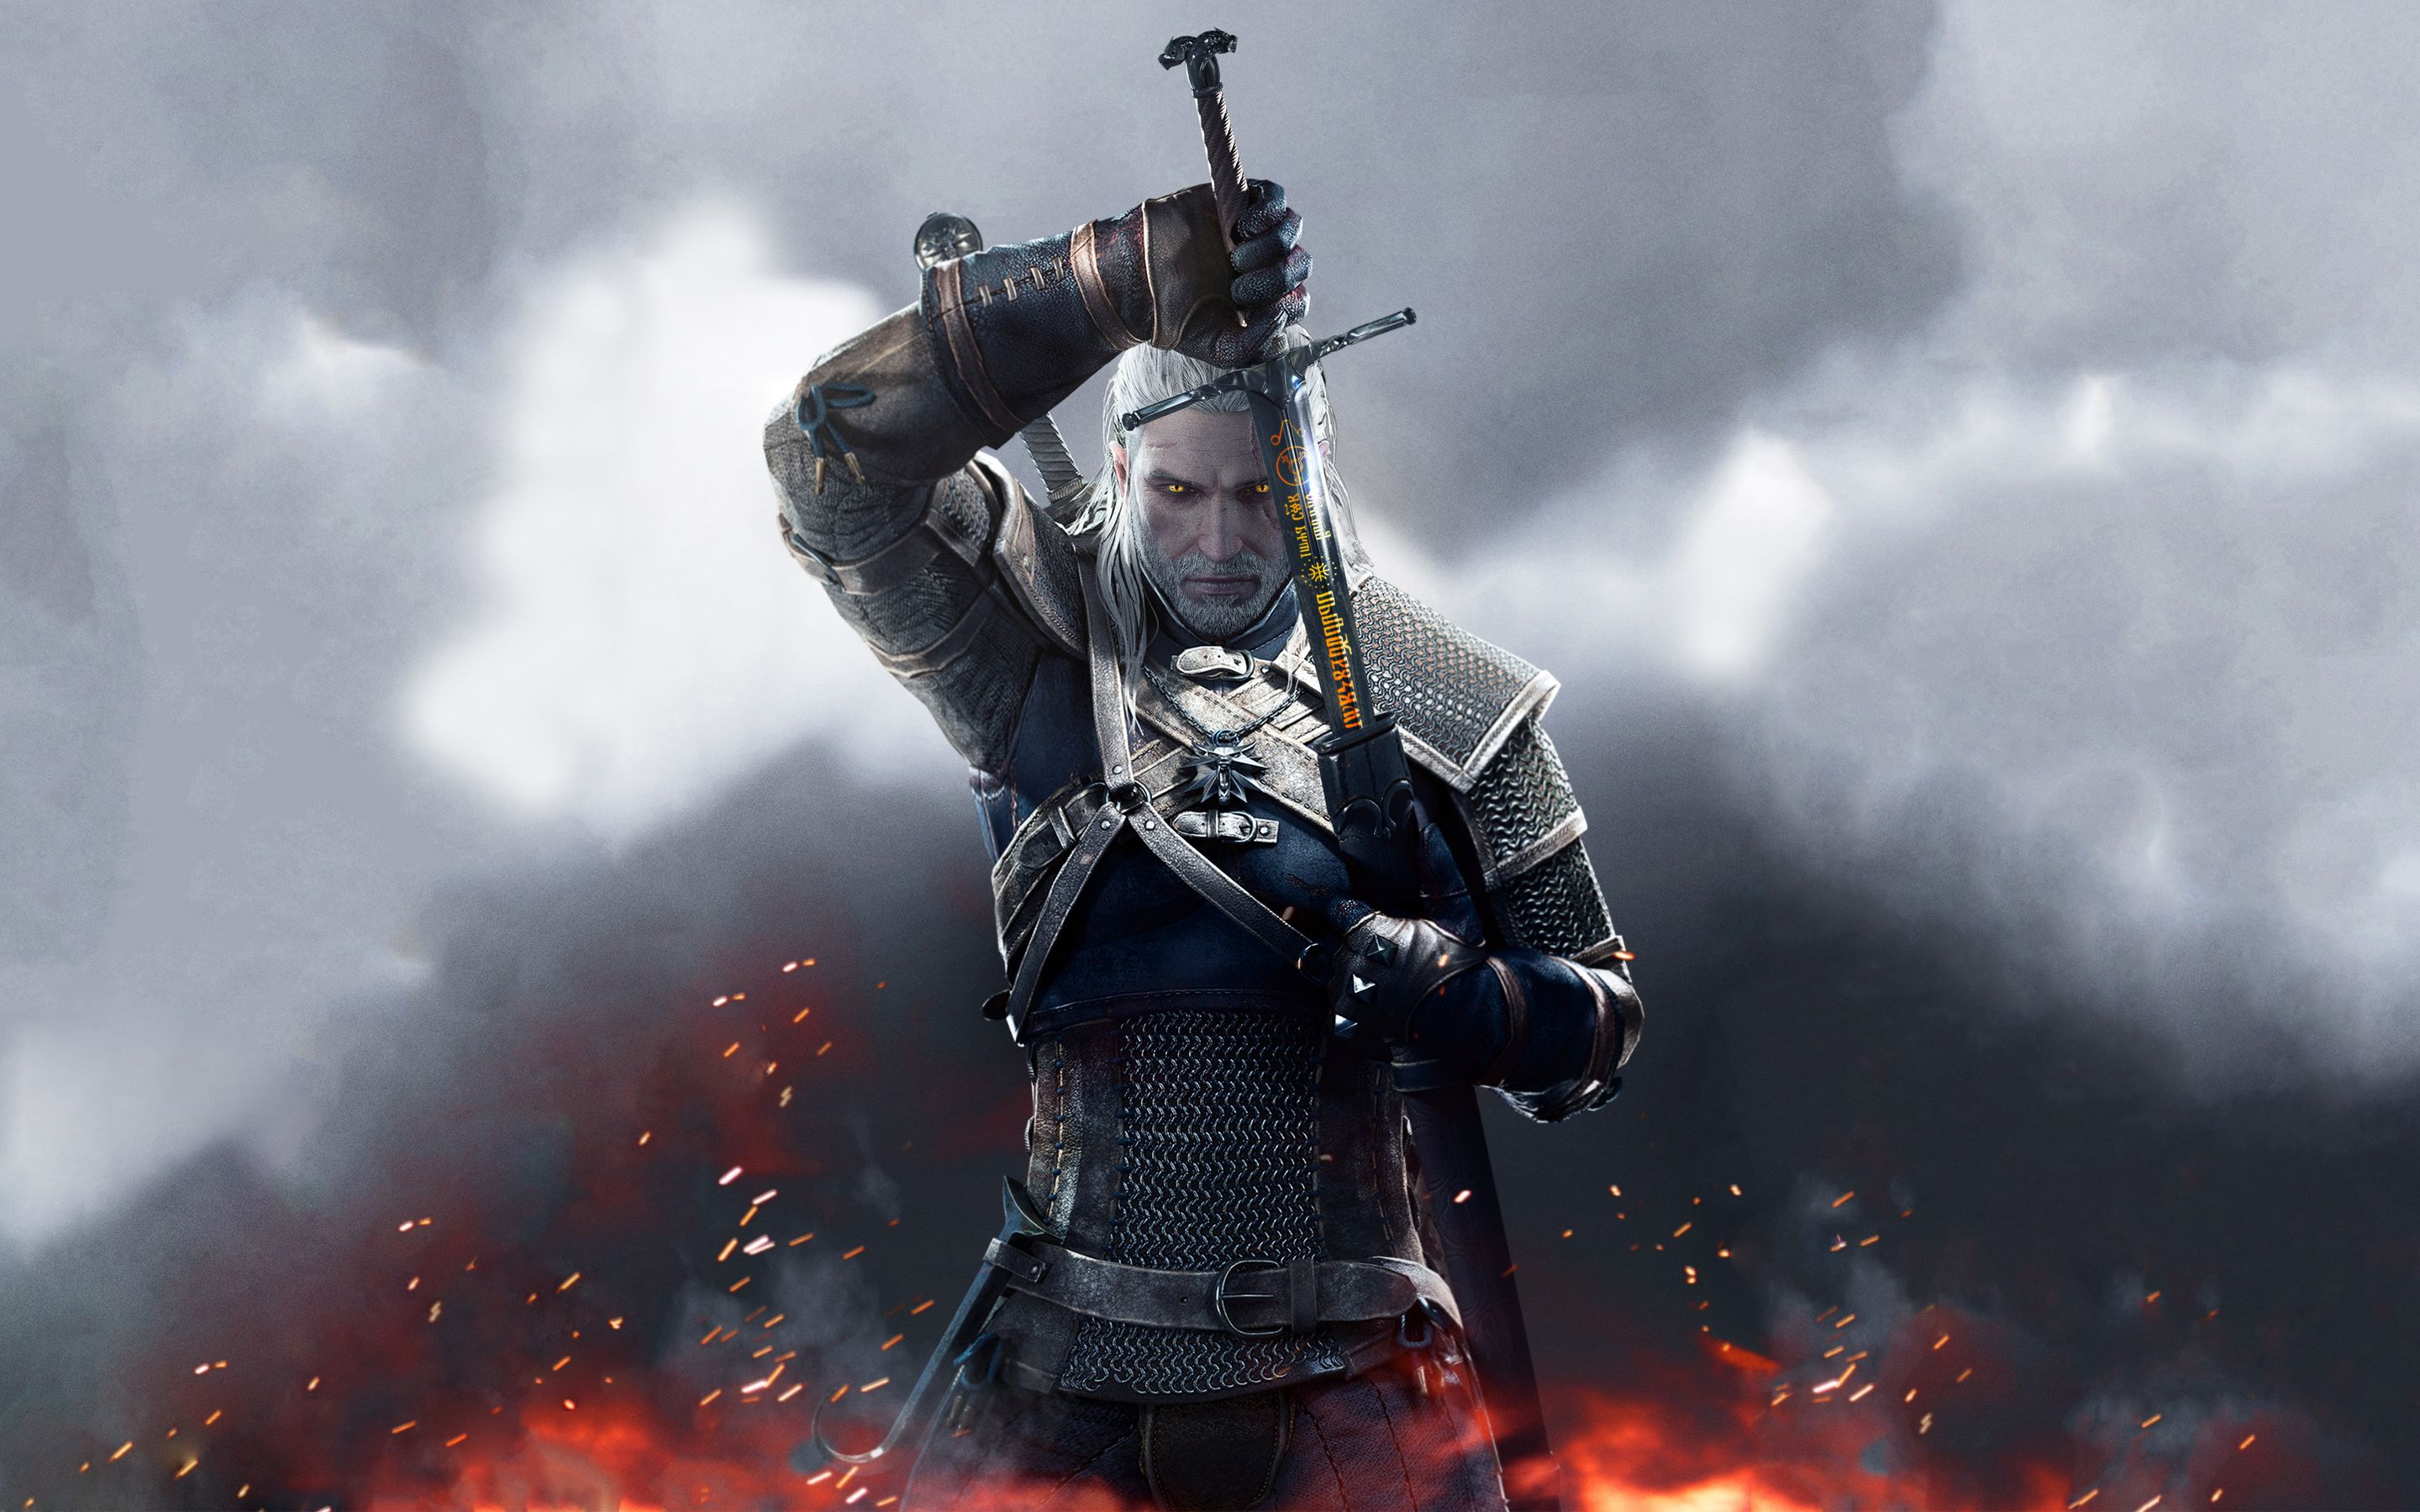 The Witcher 3 Wallpaper Hd The Witcher 3 In 2019 The